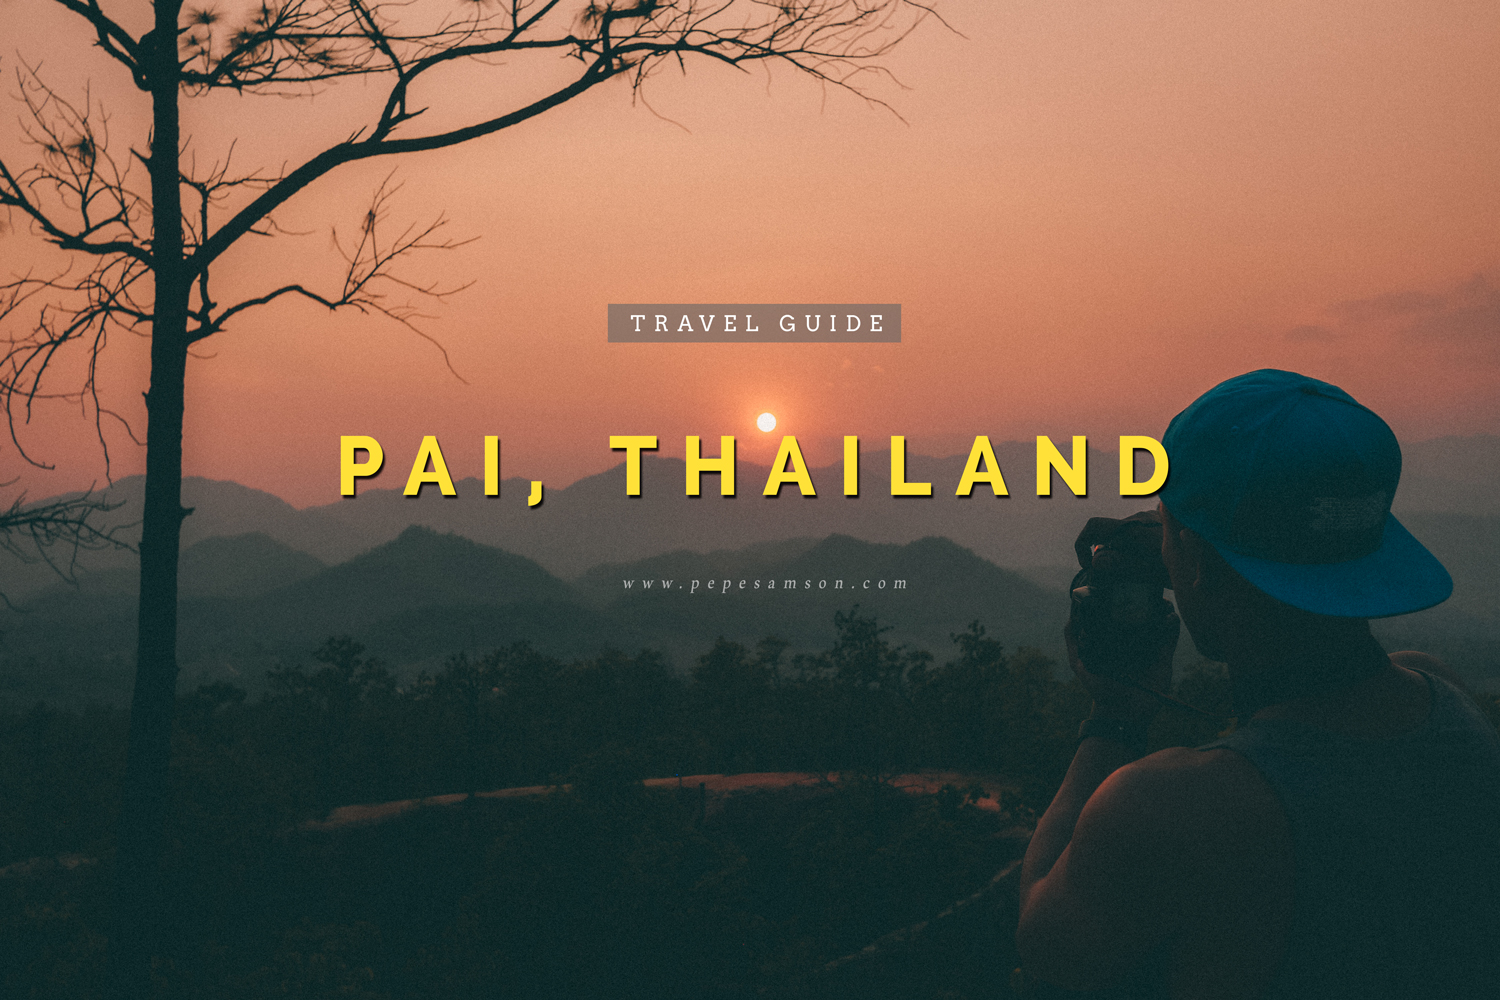 pai thailand travel guide